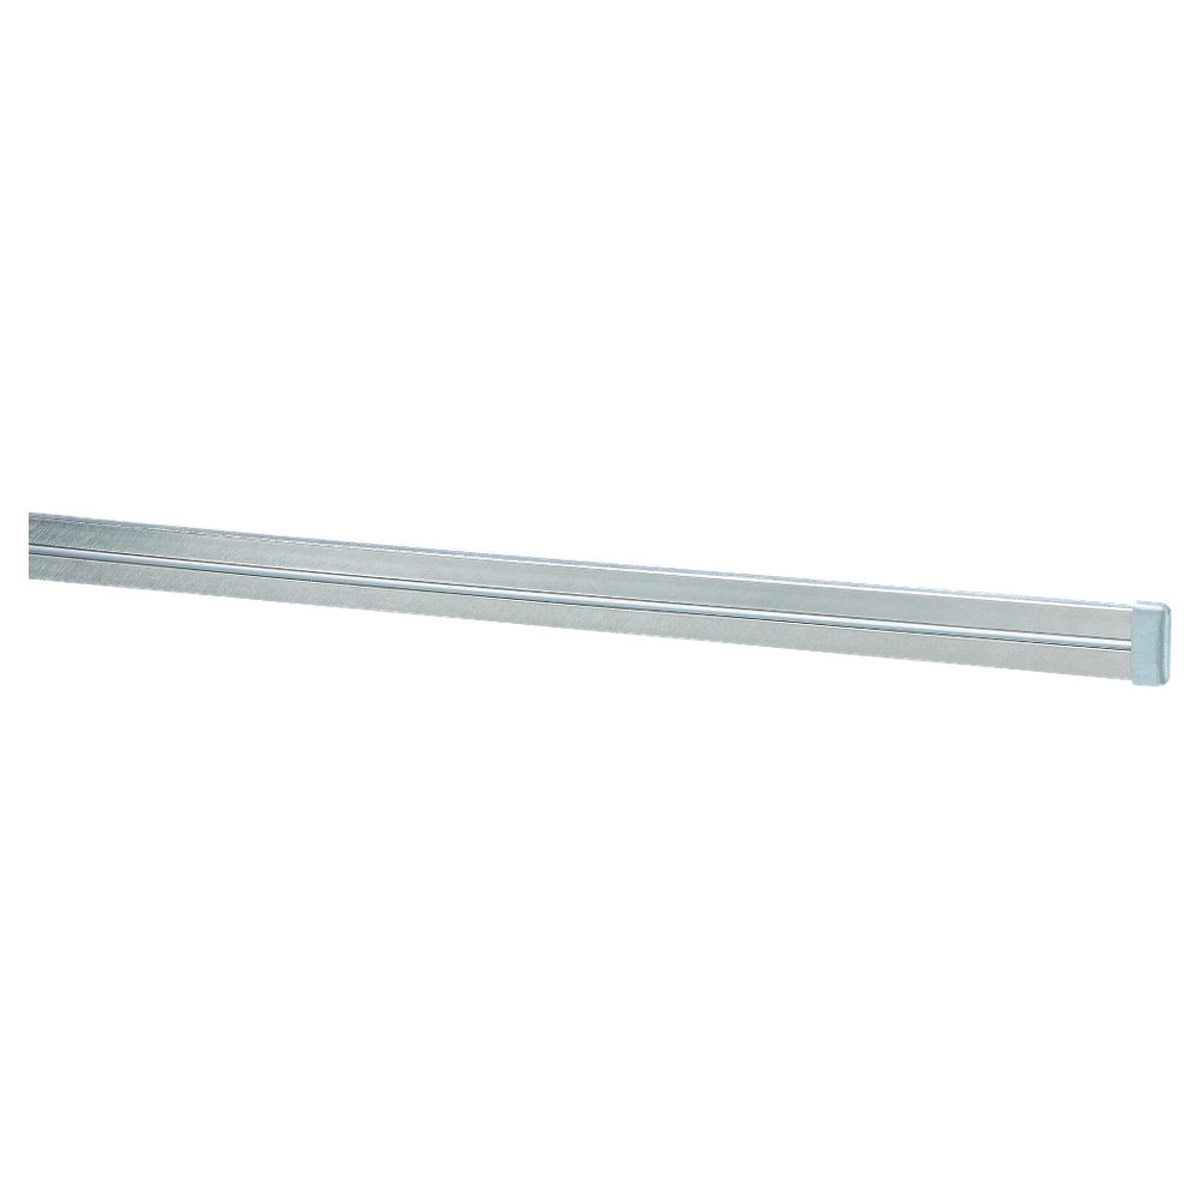 Sea Gull Lighting Ambiance Rtx Four Foot Rail in Brushed Stainless 95300-98